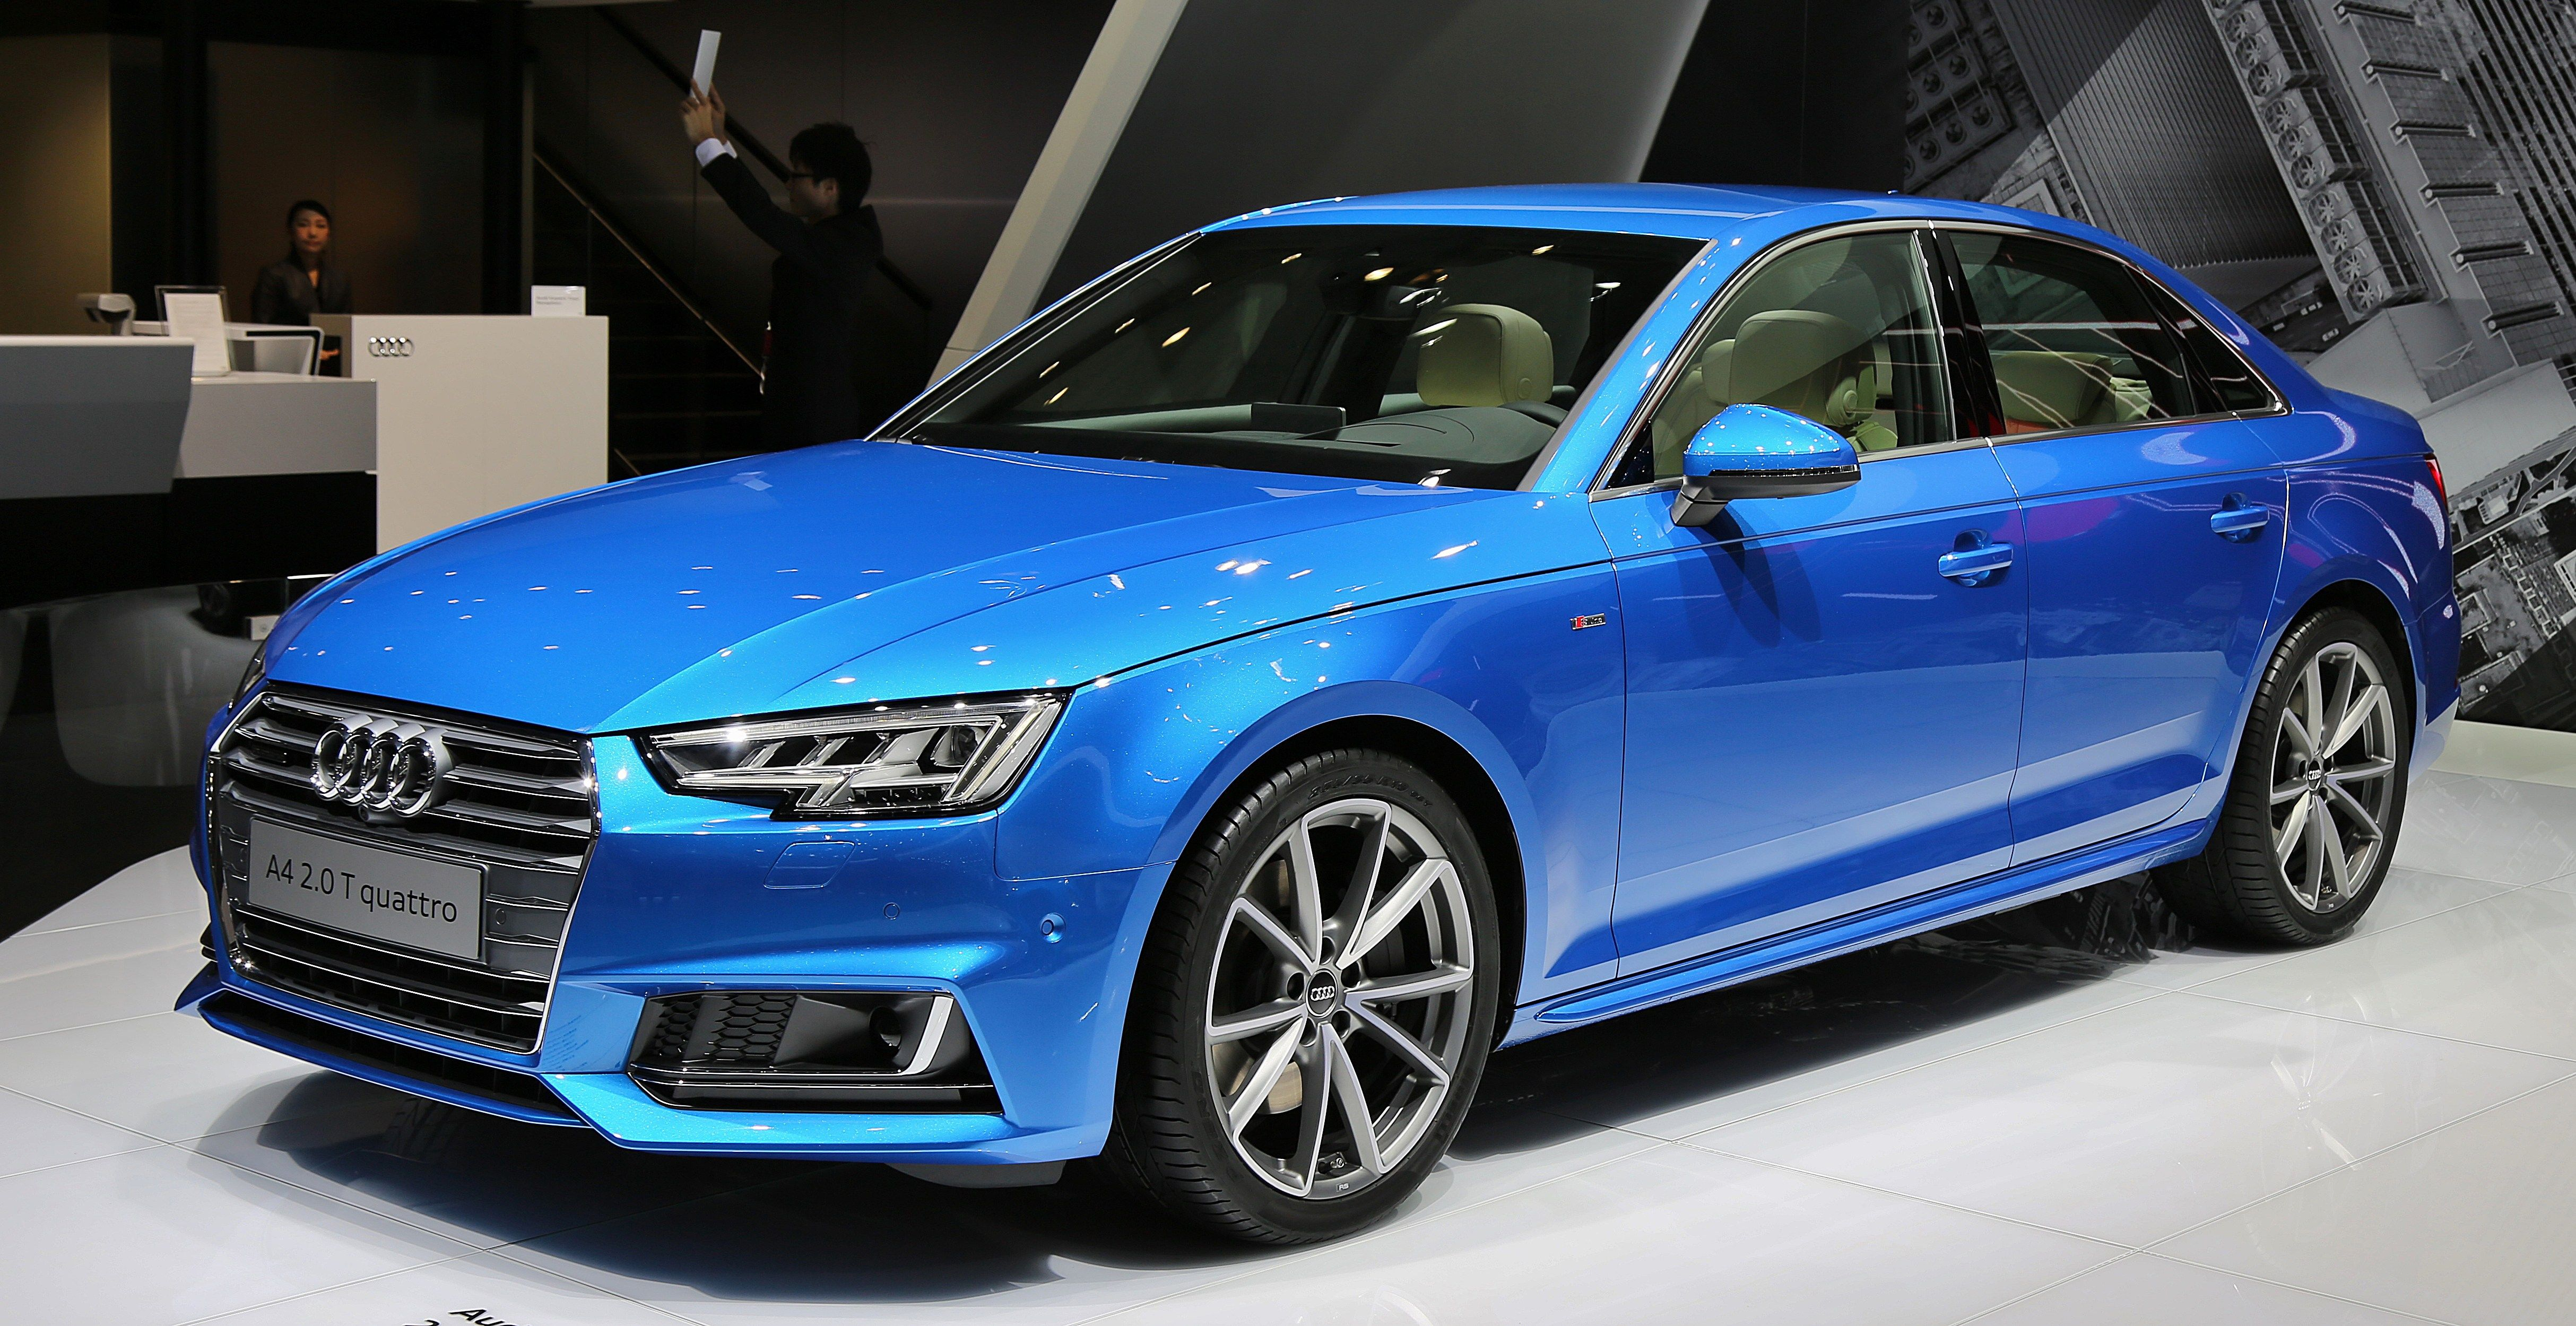 Hot Audi A4 Lease Deal 1.4T SLine Saloon Review